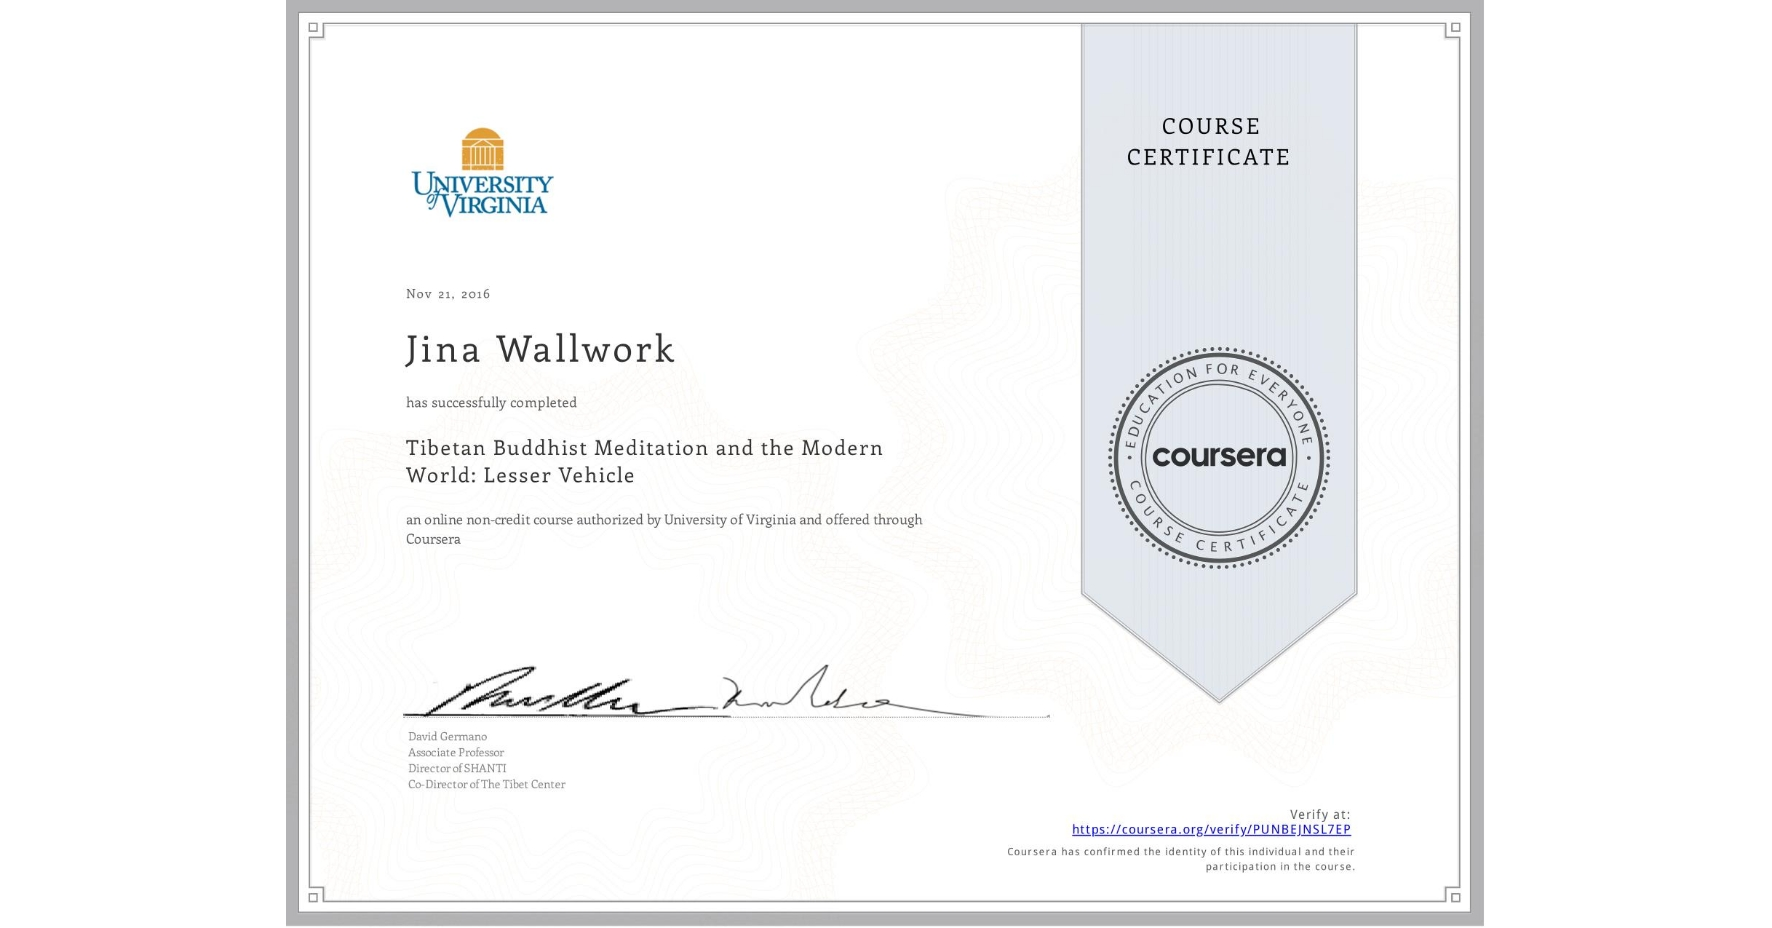 View certificate for Jina Wallwork, Tibetan Buddhist Meditation and the Modern World: Lesser Vehicle, an online non-credit course authorized by University of Virginia and offered through Coursera